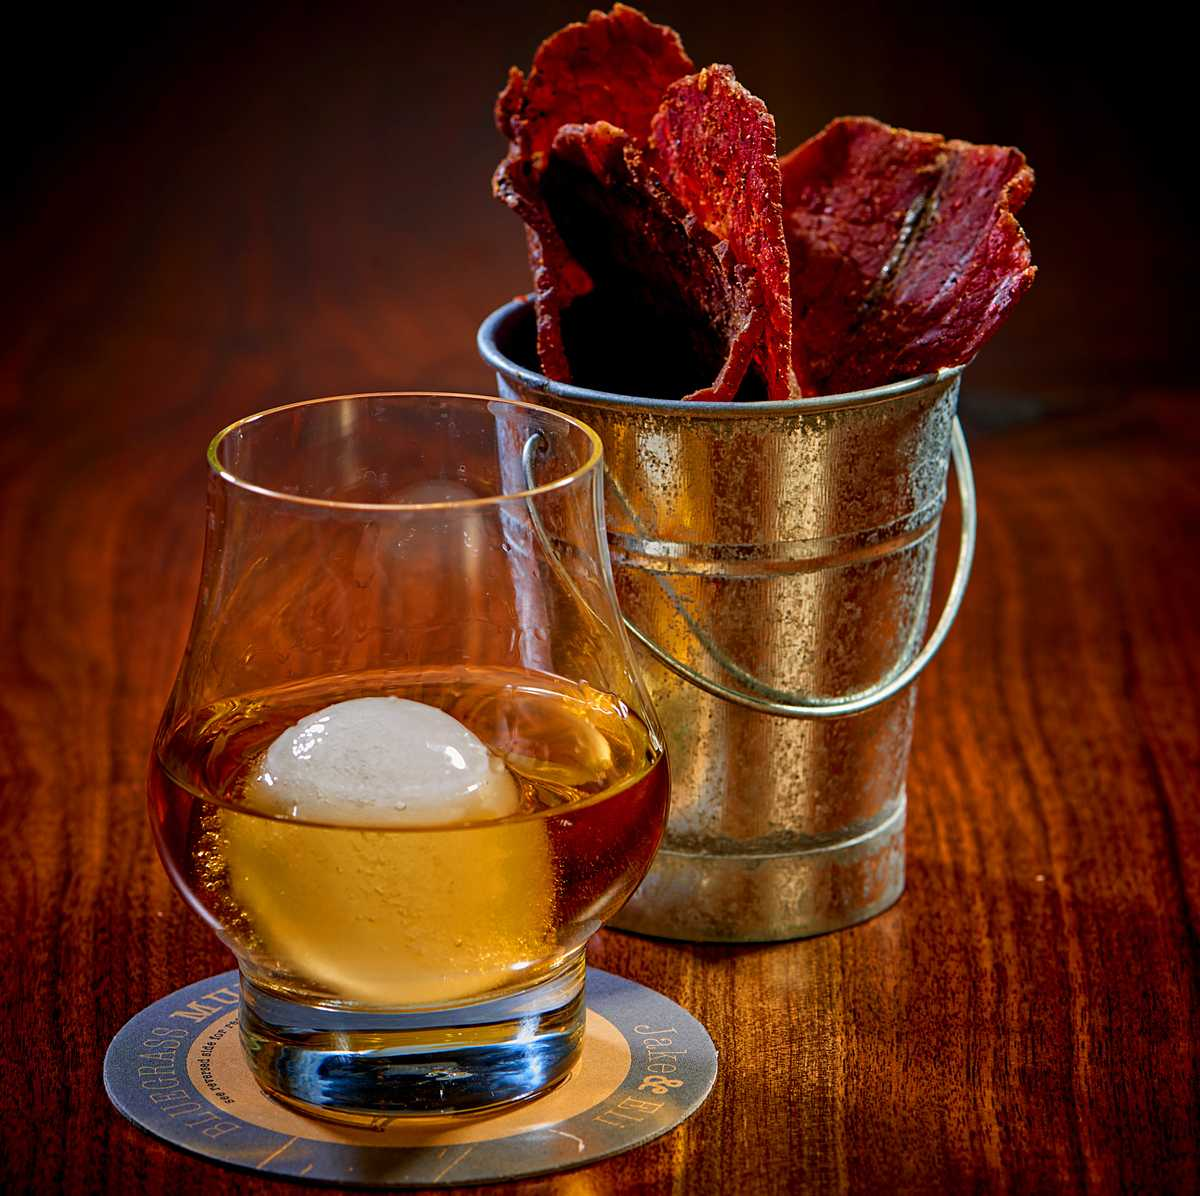 Bourbon and Beef hand made Beef Jerky at Jake and Eli's at the Westin Hotel and Spa